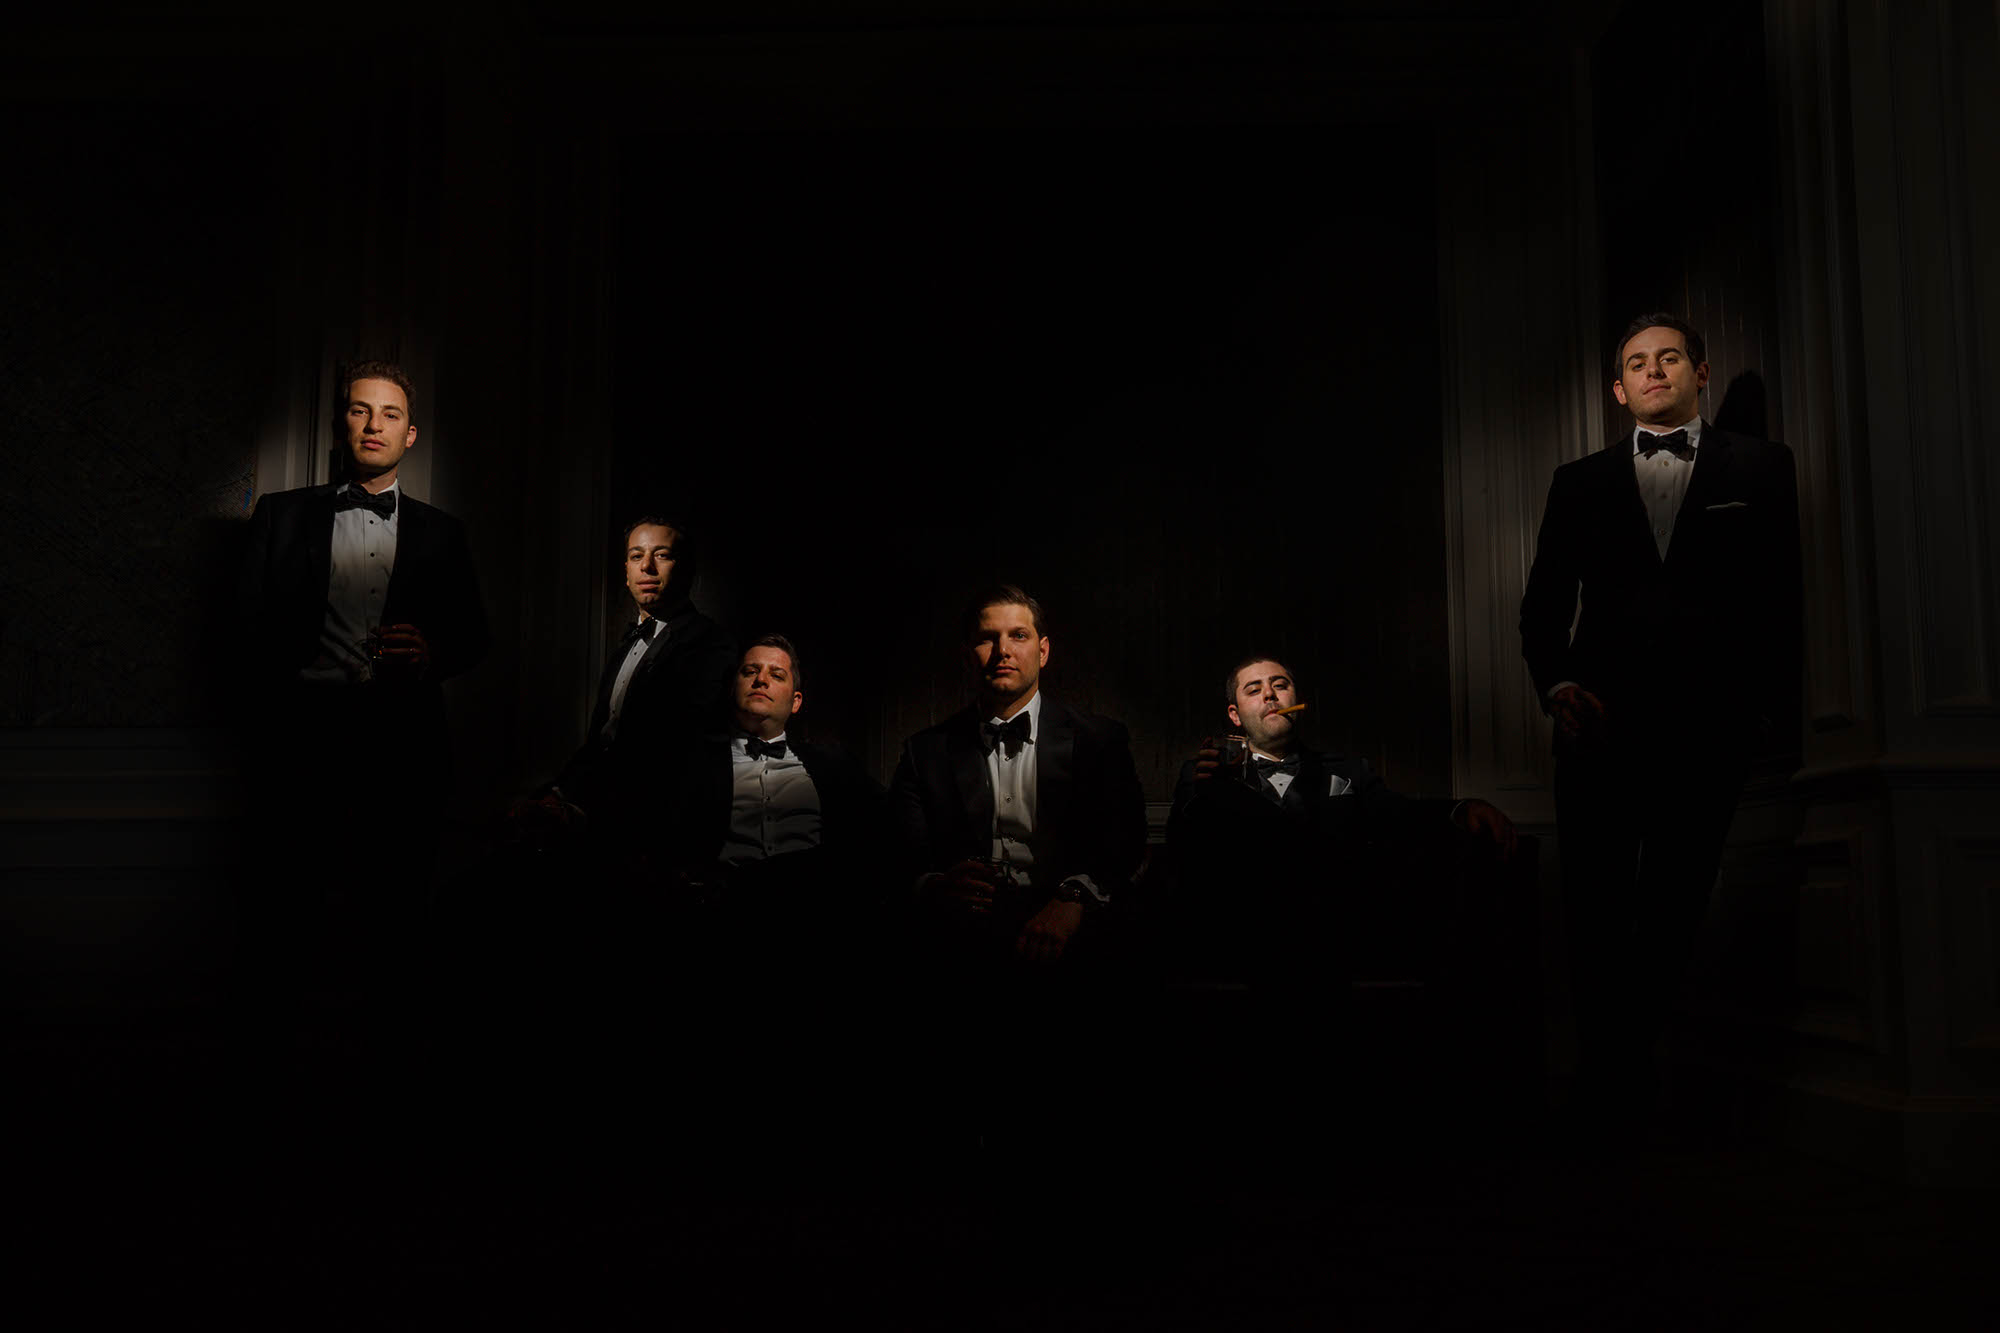 A groom with his groomsmen where each face was was lit up while the rest of the image remained dark.